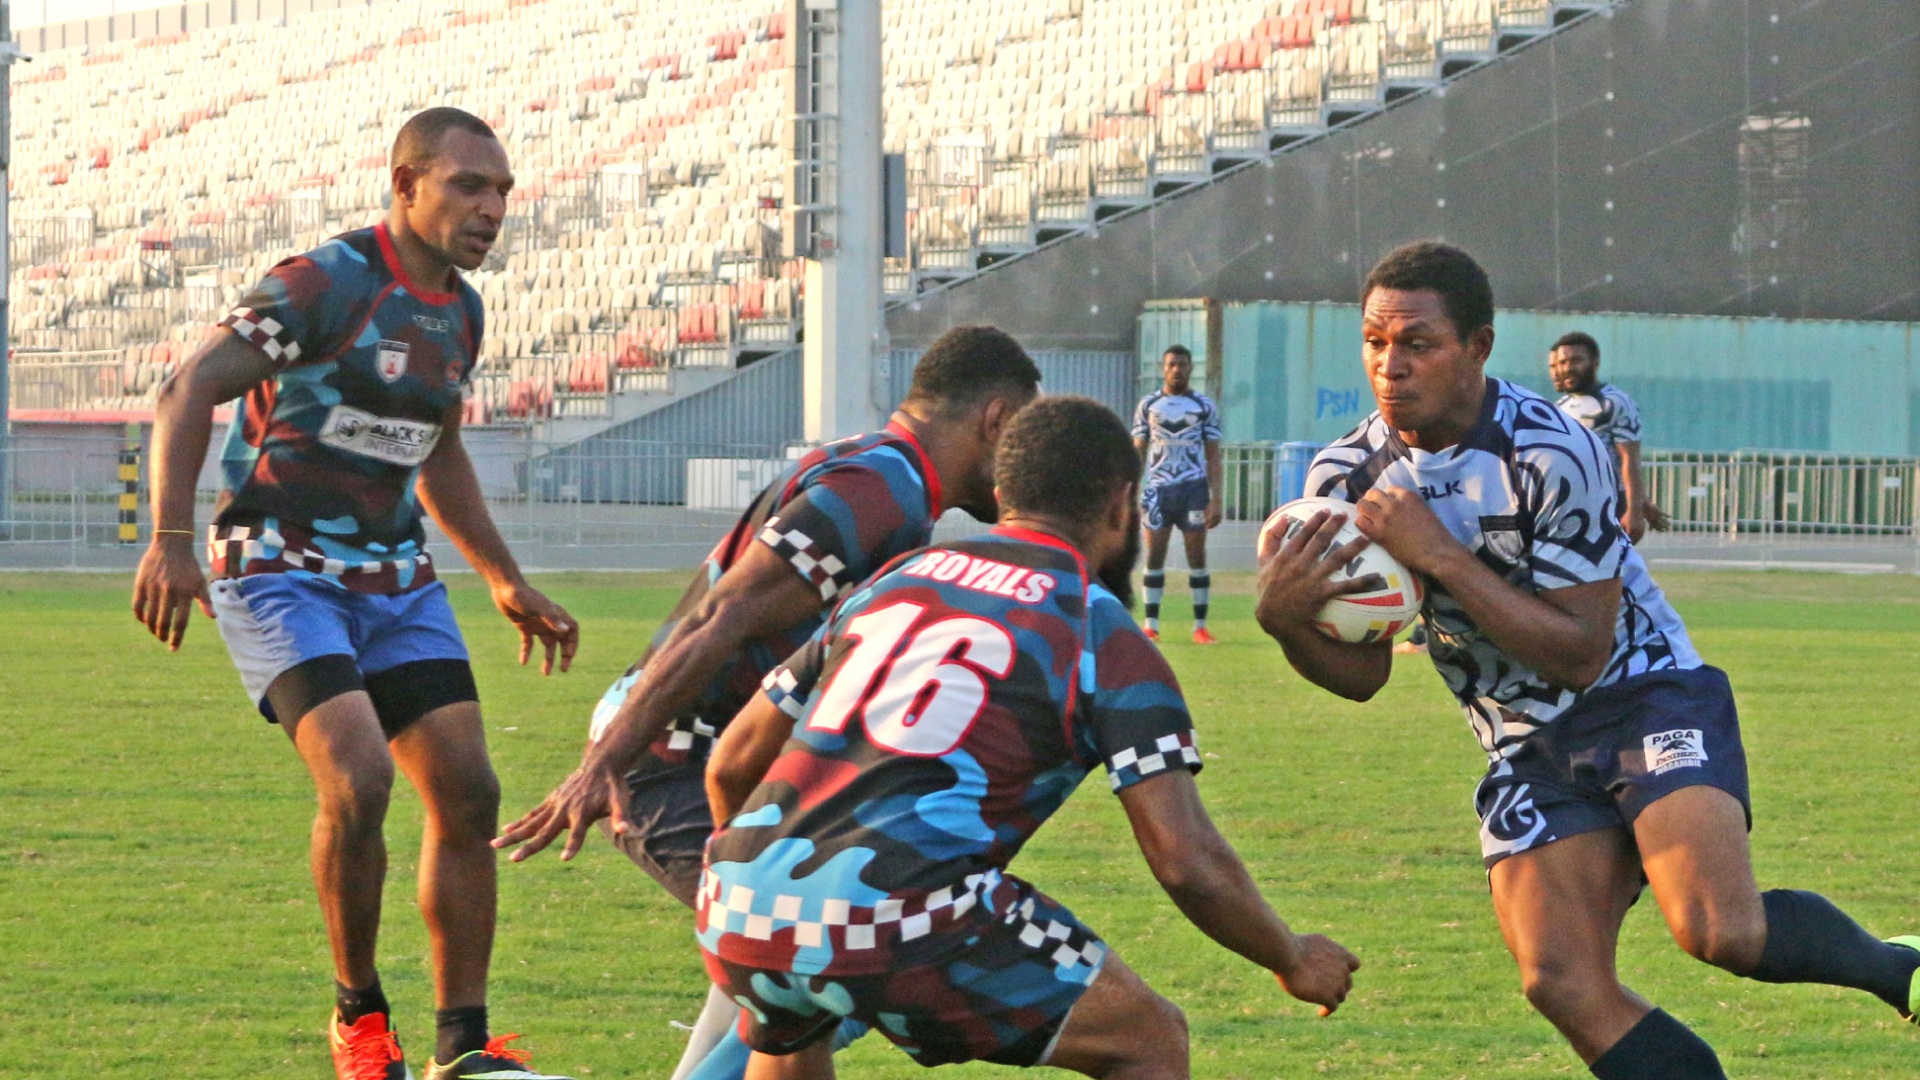 Finalist for Port Moresby RFL Nines decided